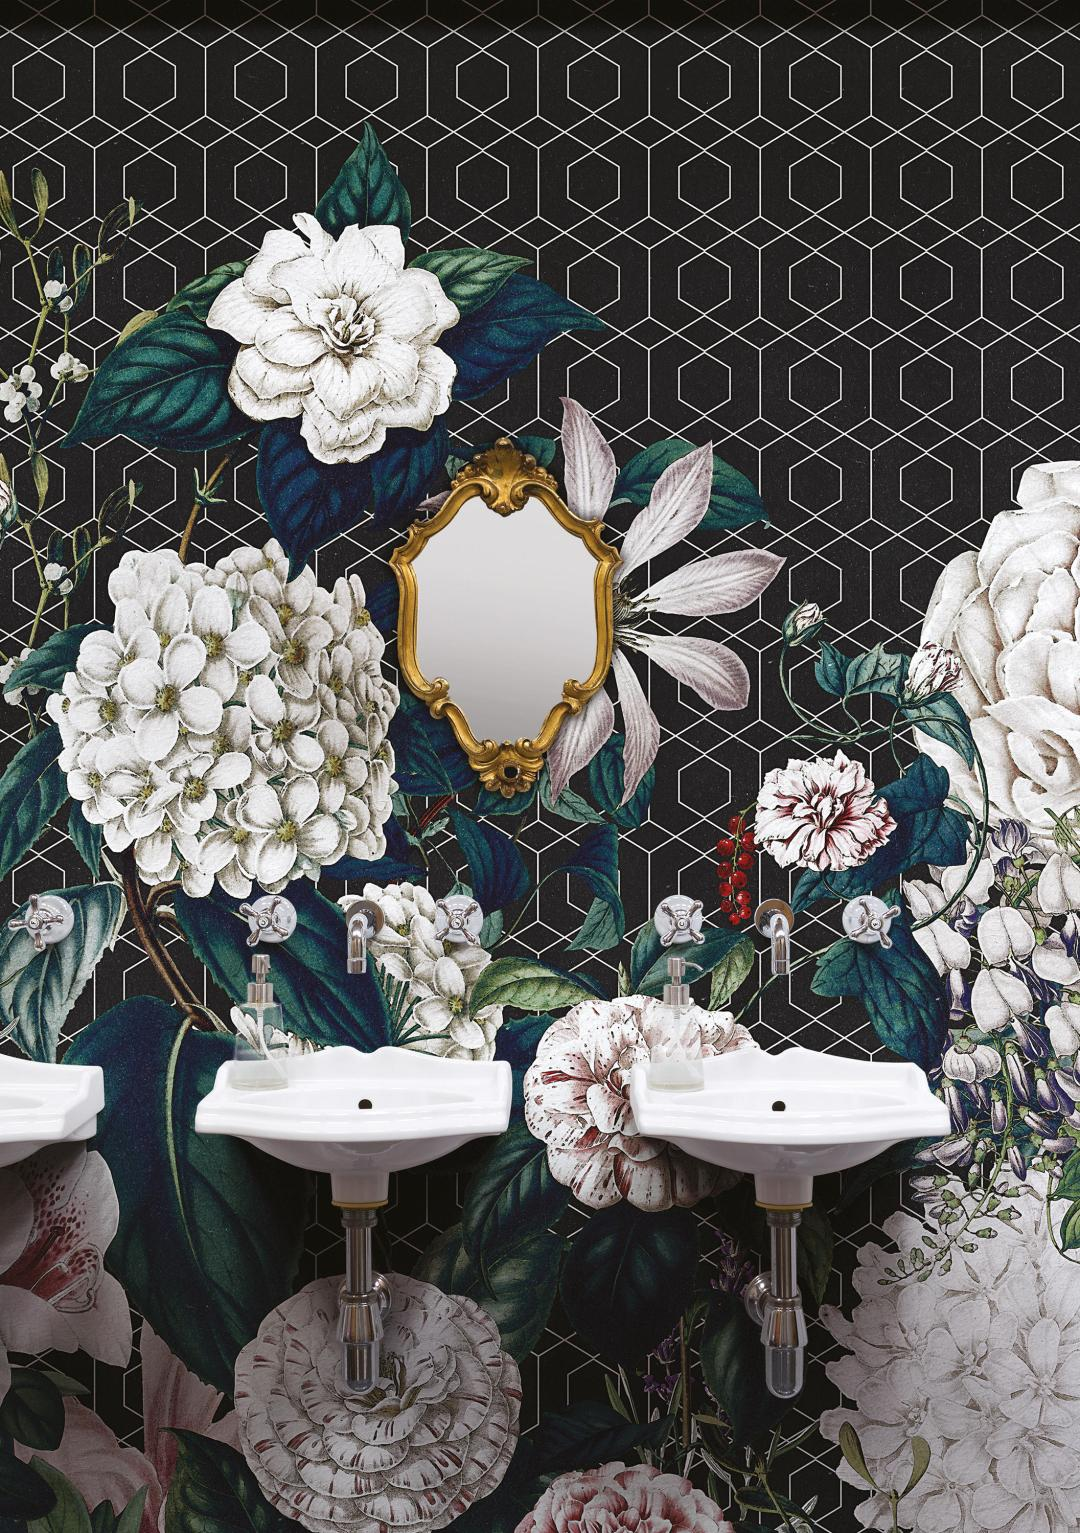 Valeria Zaltron's wallpaper Botanical Garden by Londonart - How to give life to your interior with floral pattern? | Aliz's Wonderland